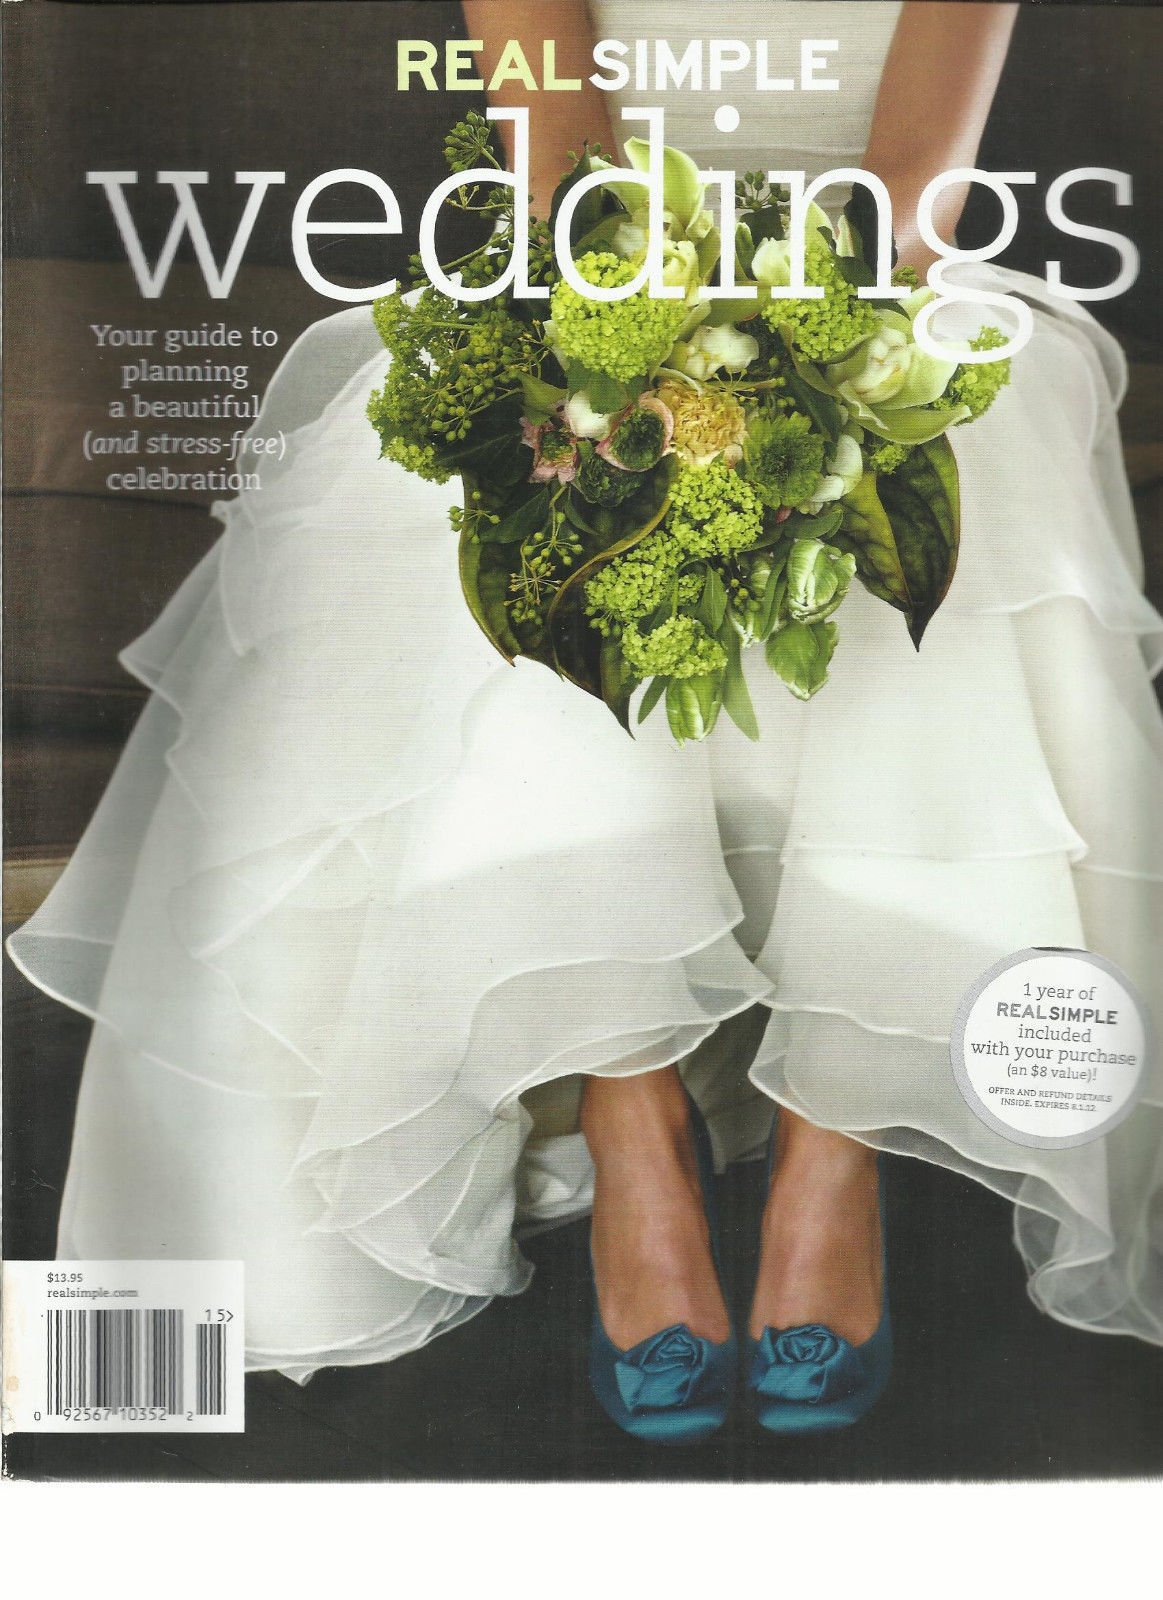 REAL SIMPLE WEDDINGS MAGAZINE 2012, YOUR GUIDE TO PLANNING WEDDING, NEW NO LABEL